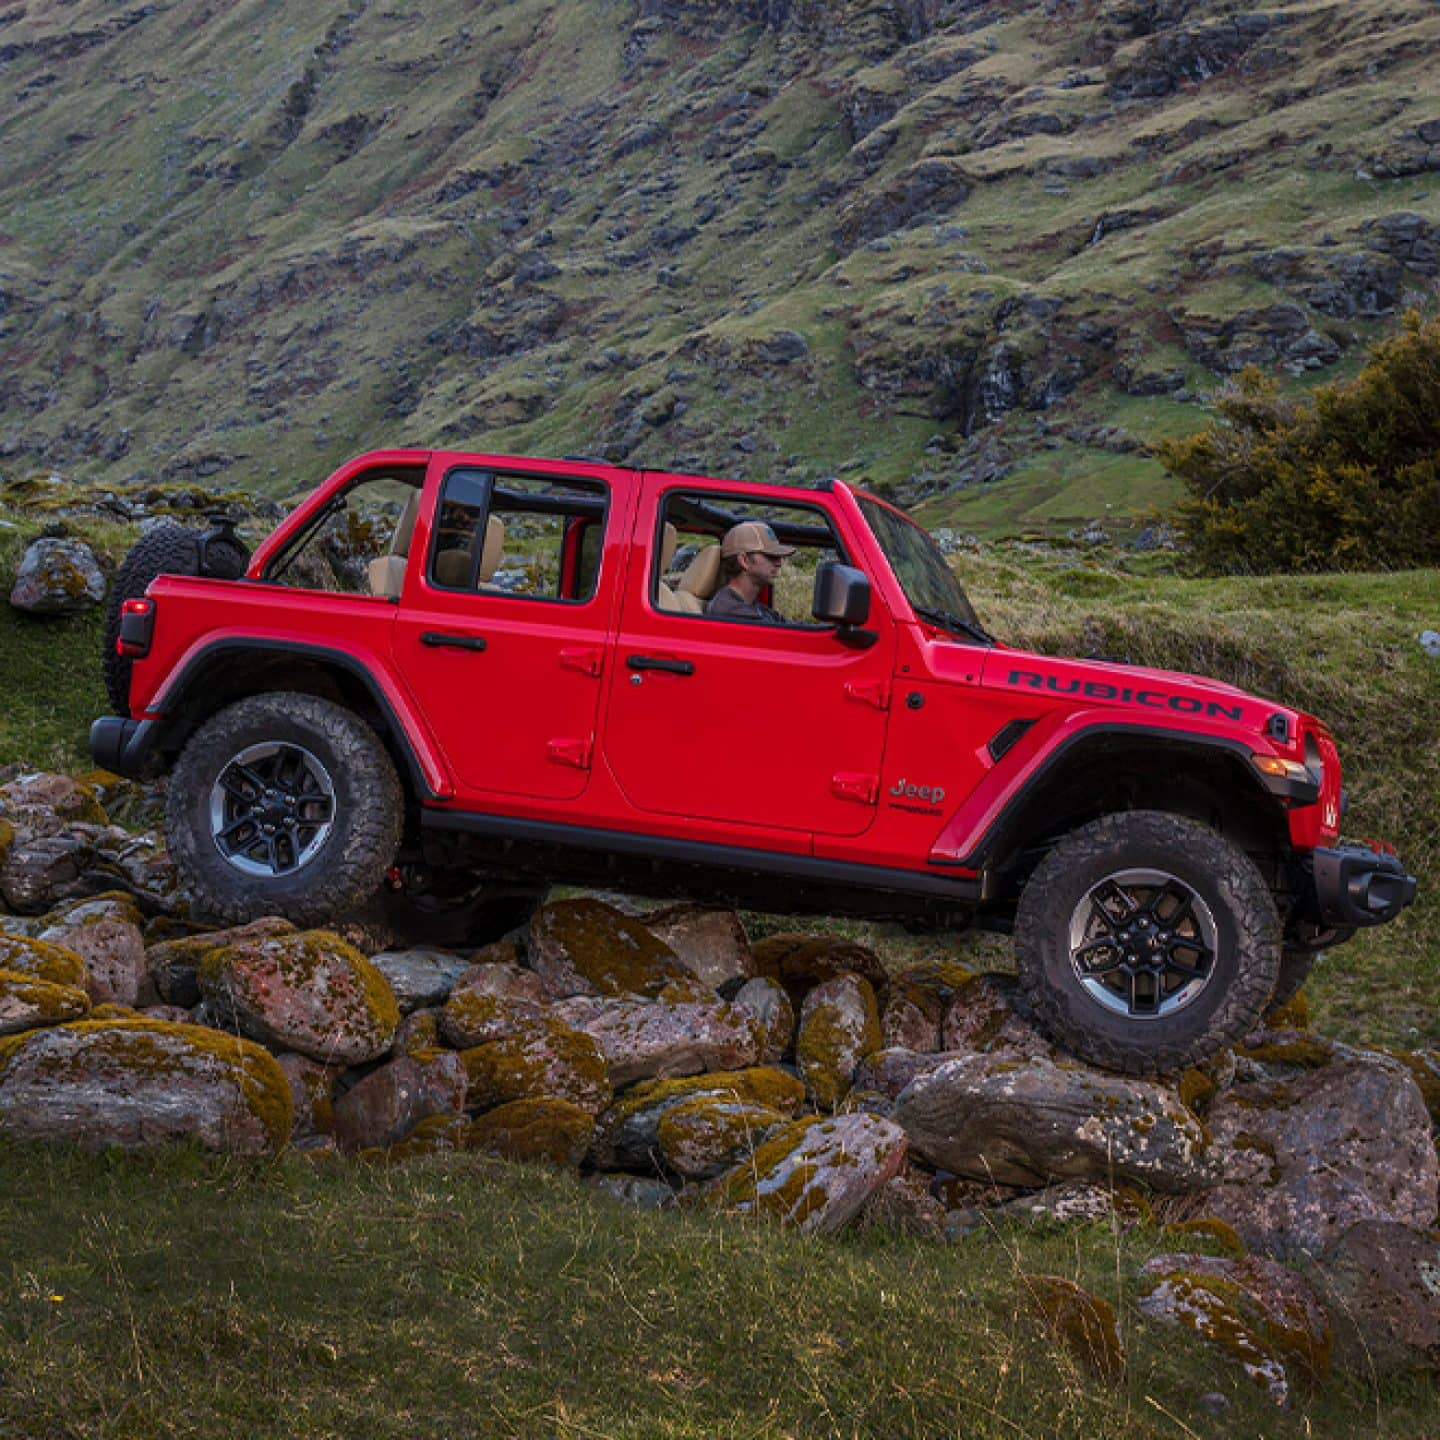 2020 Jeep Wrangler Trail Rated Capability